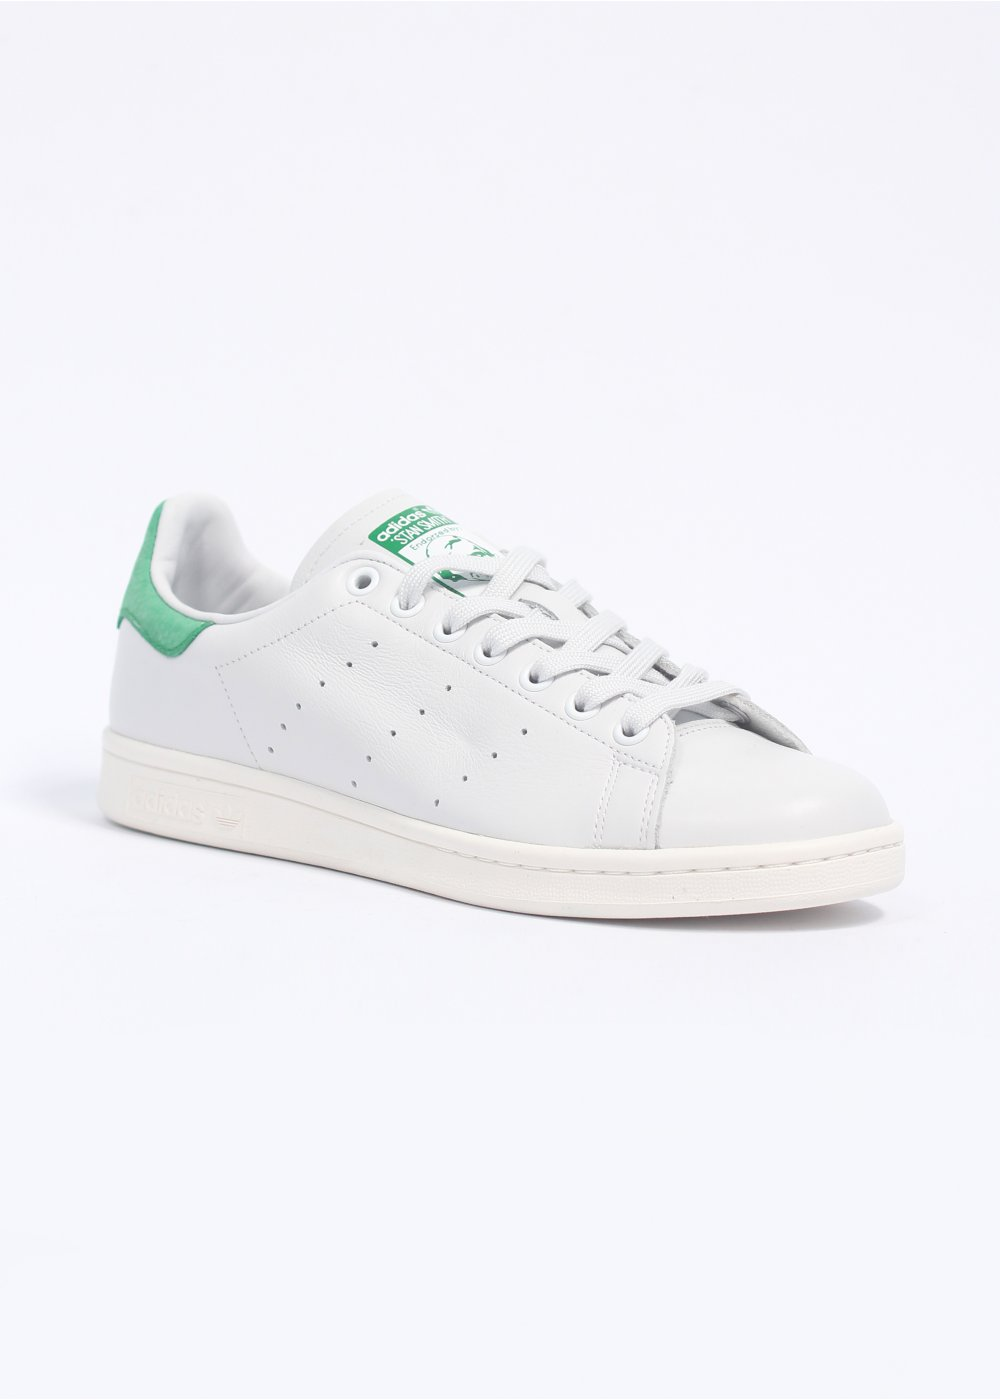 adidas Originals Footwear Stan Smith Trainers Neo White Fairway Green